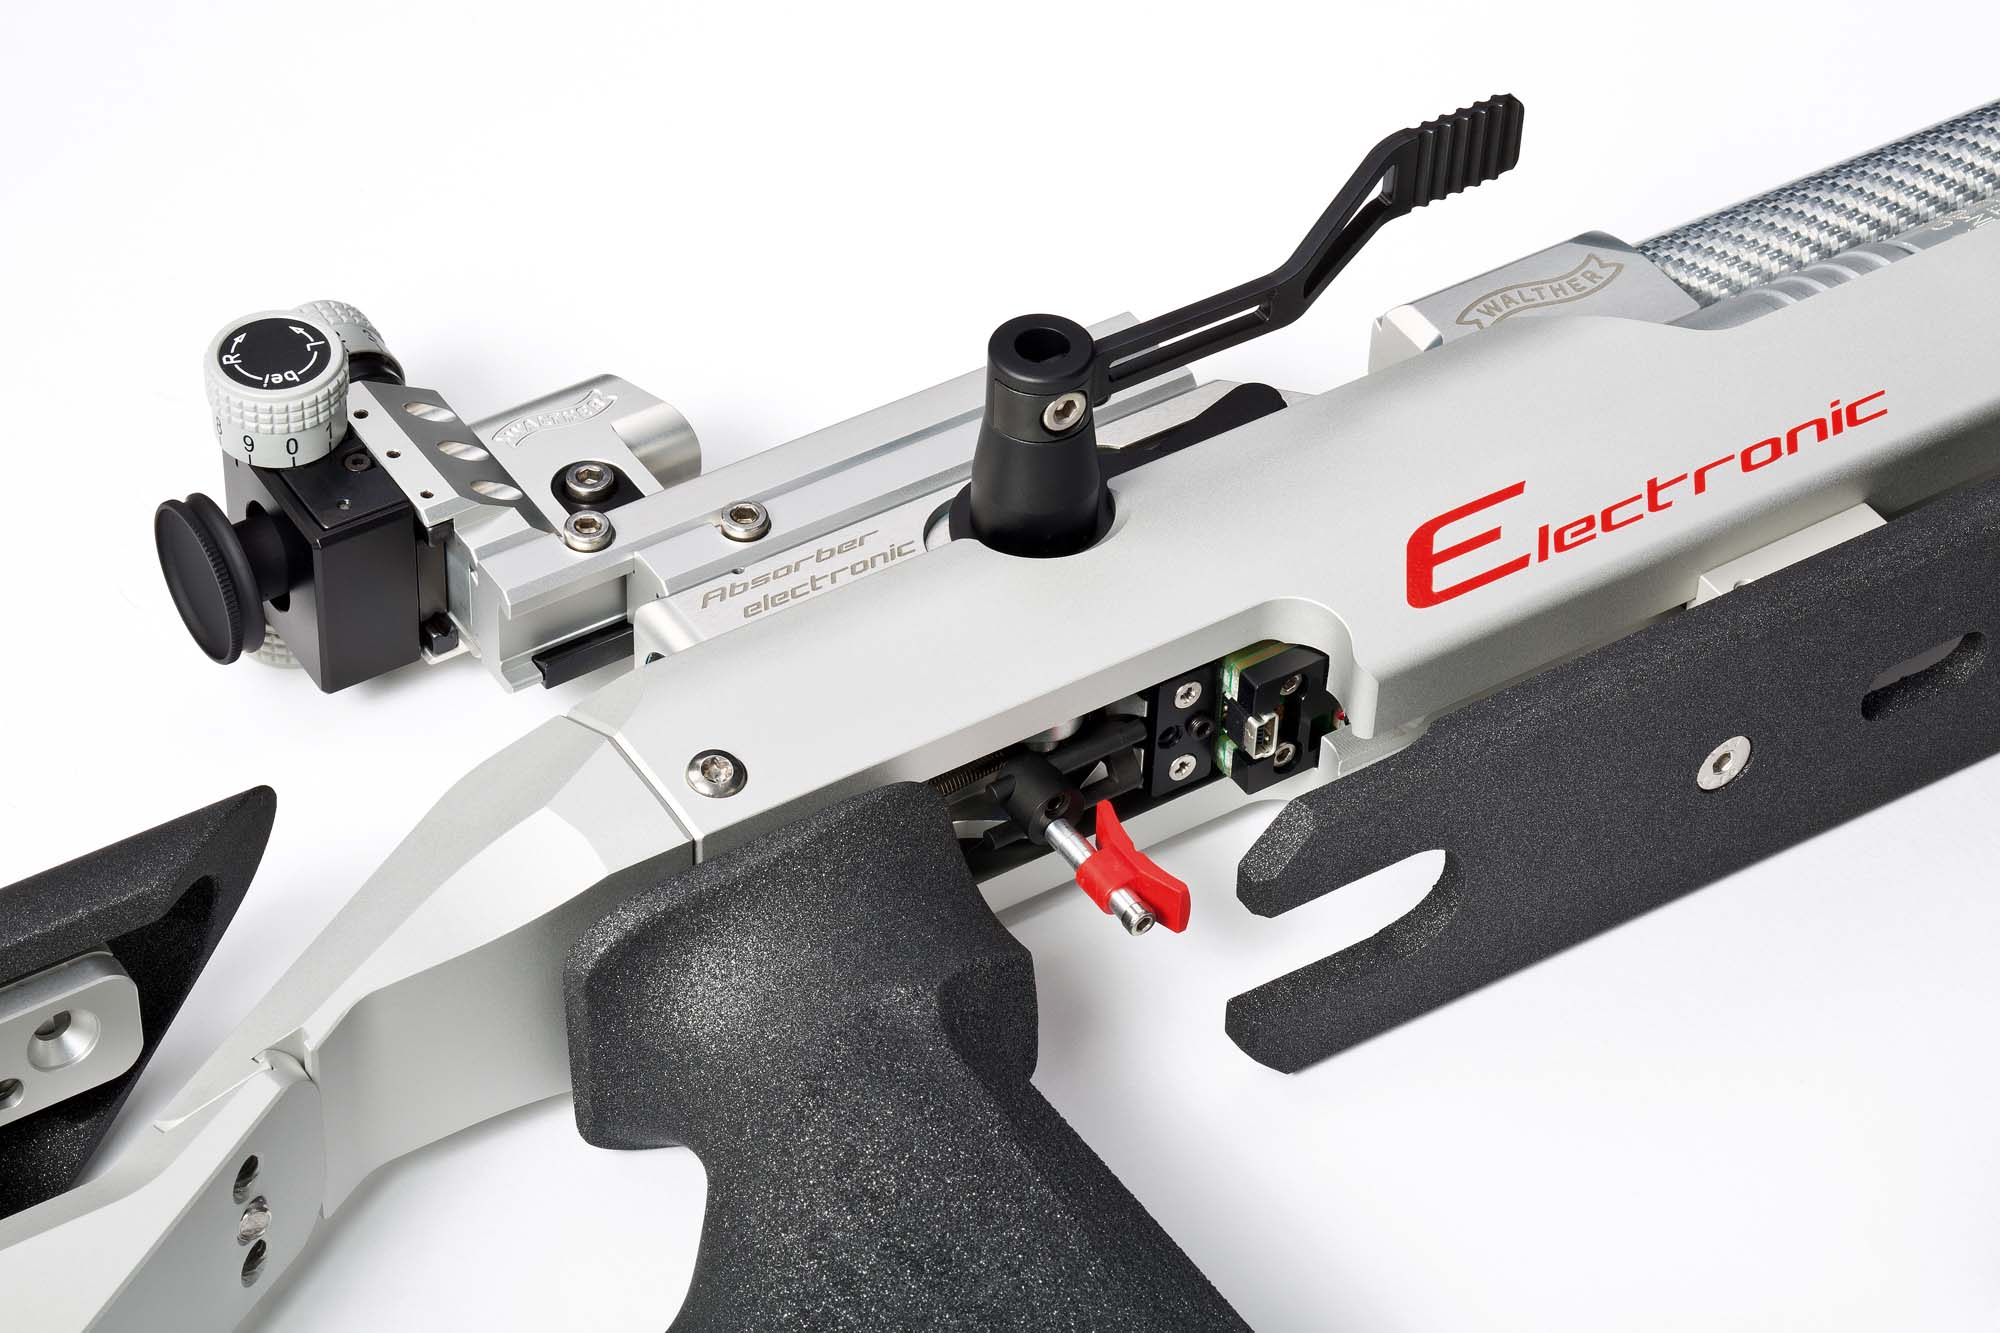 walther lg400 e electronic the future of airguns gunsweek com rh gunsweek com Walther AR Walther AR